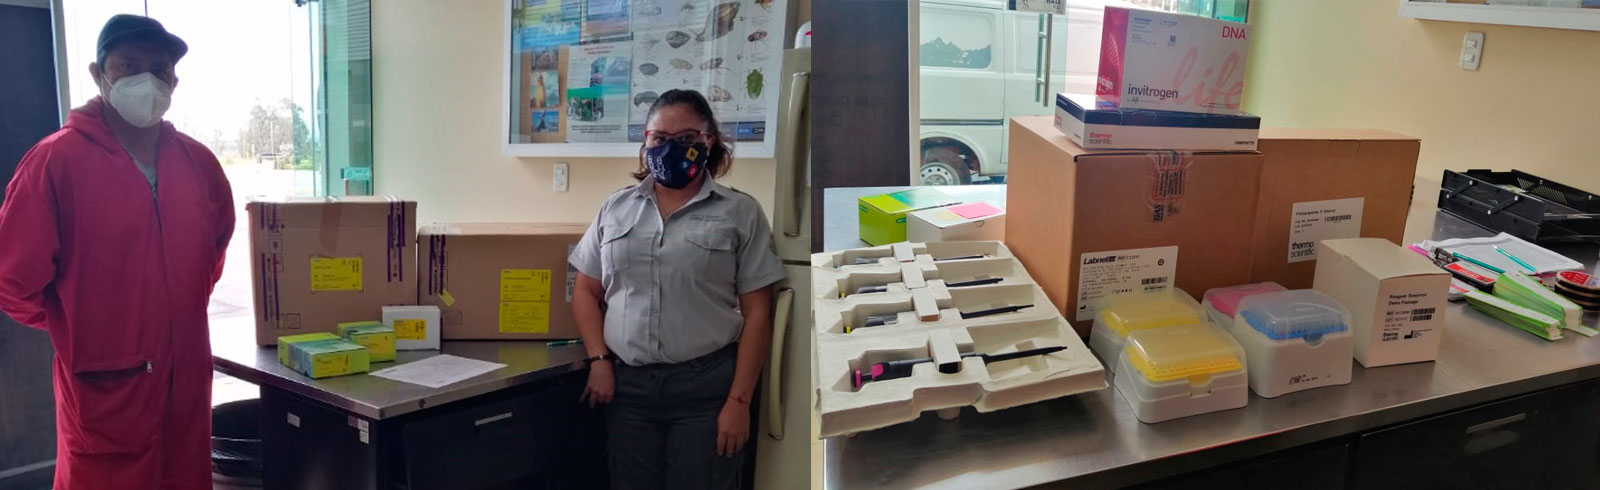 Donation made possible by Kristin Hettermann and Sven Lindblad arriving at the Galapagos Biosecurity Agency office in Puerto Ayora, Galapagos.